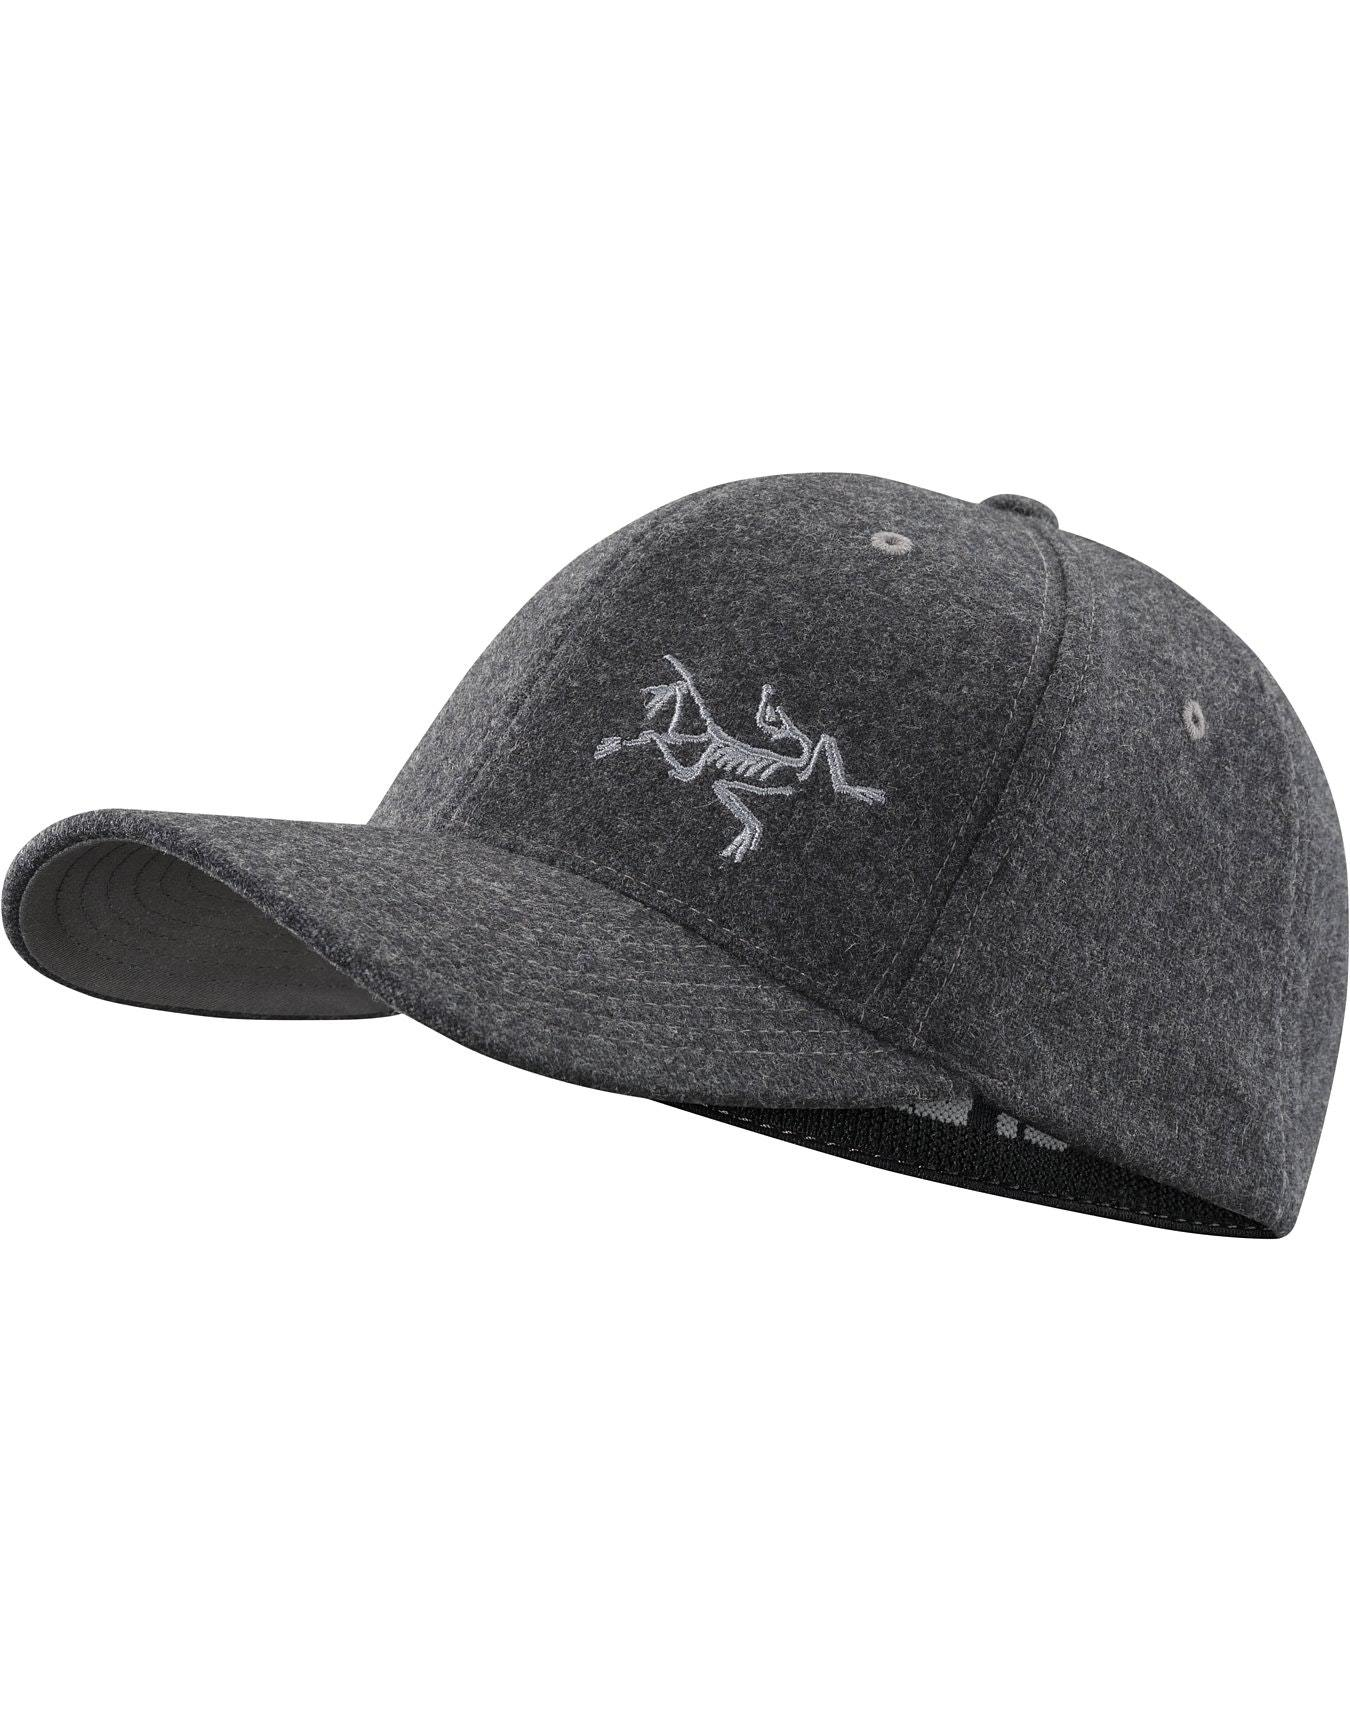 Arc'teryx Wool Adult Ball Cap 2019